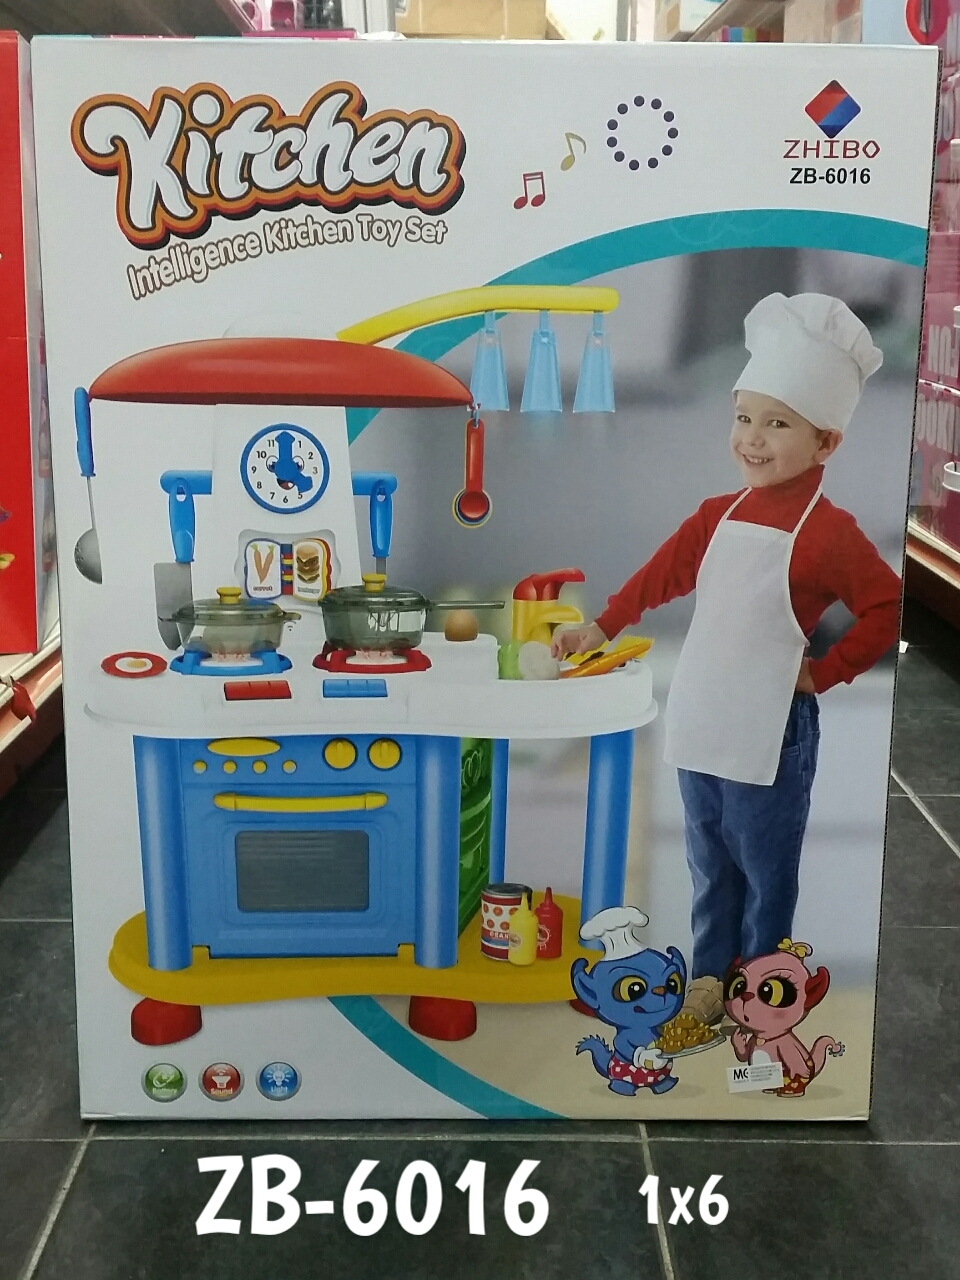 Intelligence kitchen toy set ttzb6016 1 jpg